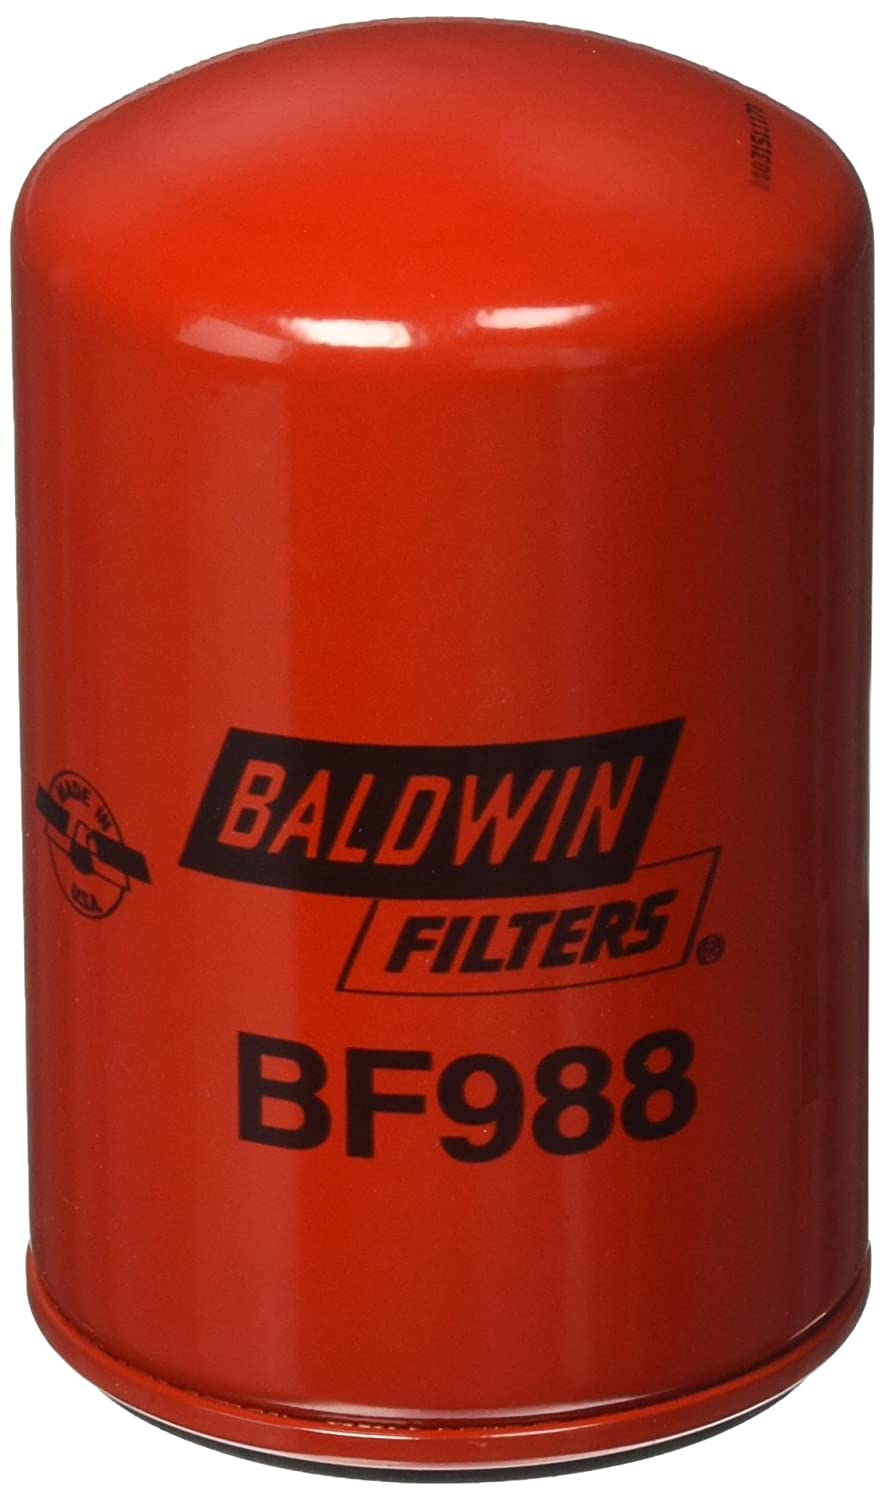 Baldwin Bf988 Heavy Duty Diesel Fuel Spin On Filter Cts Automotive